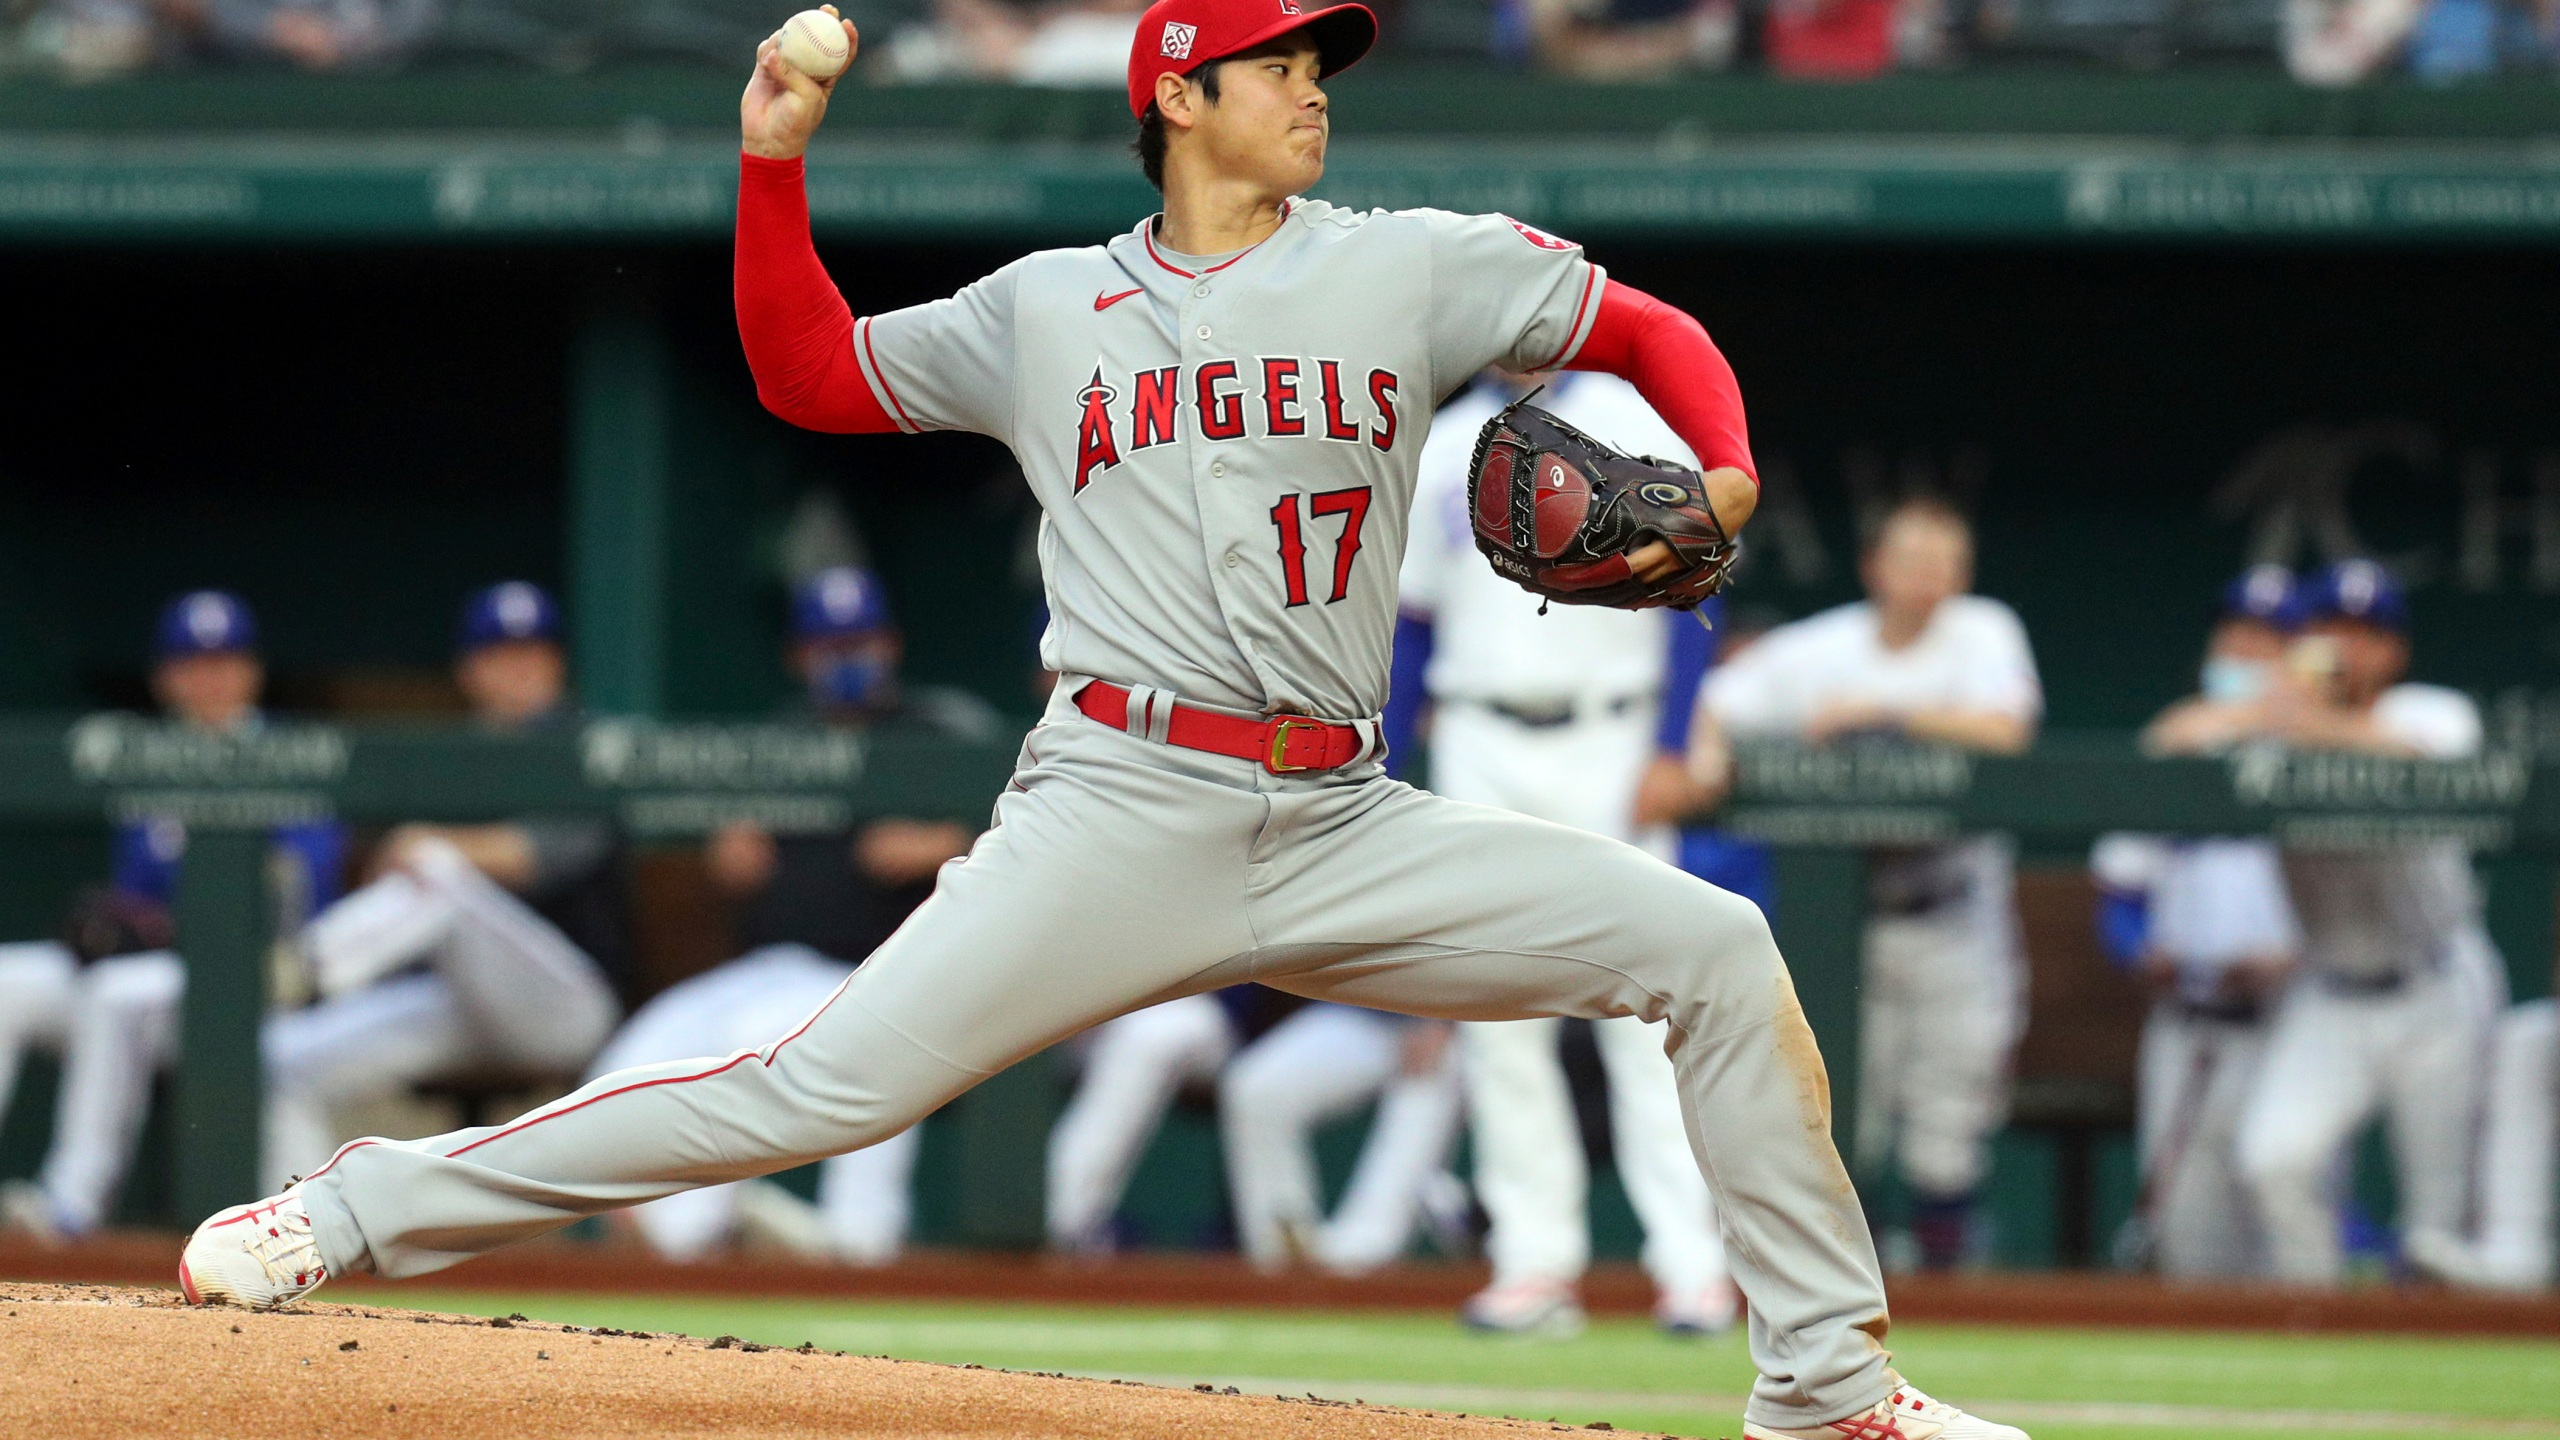 Los Angeles Angels starting pitcher Shohei Ohtani works the first inning during a baseball game against the Texas Rangers in Arlington, Texas, on April 26, 2021. (Richard W. Rodriguez / Associated Press)